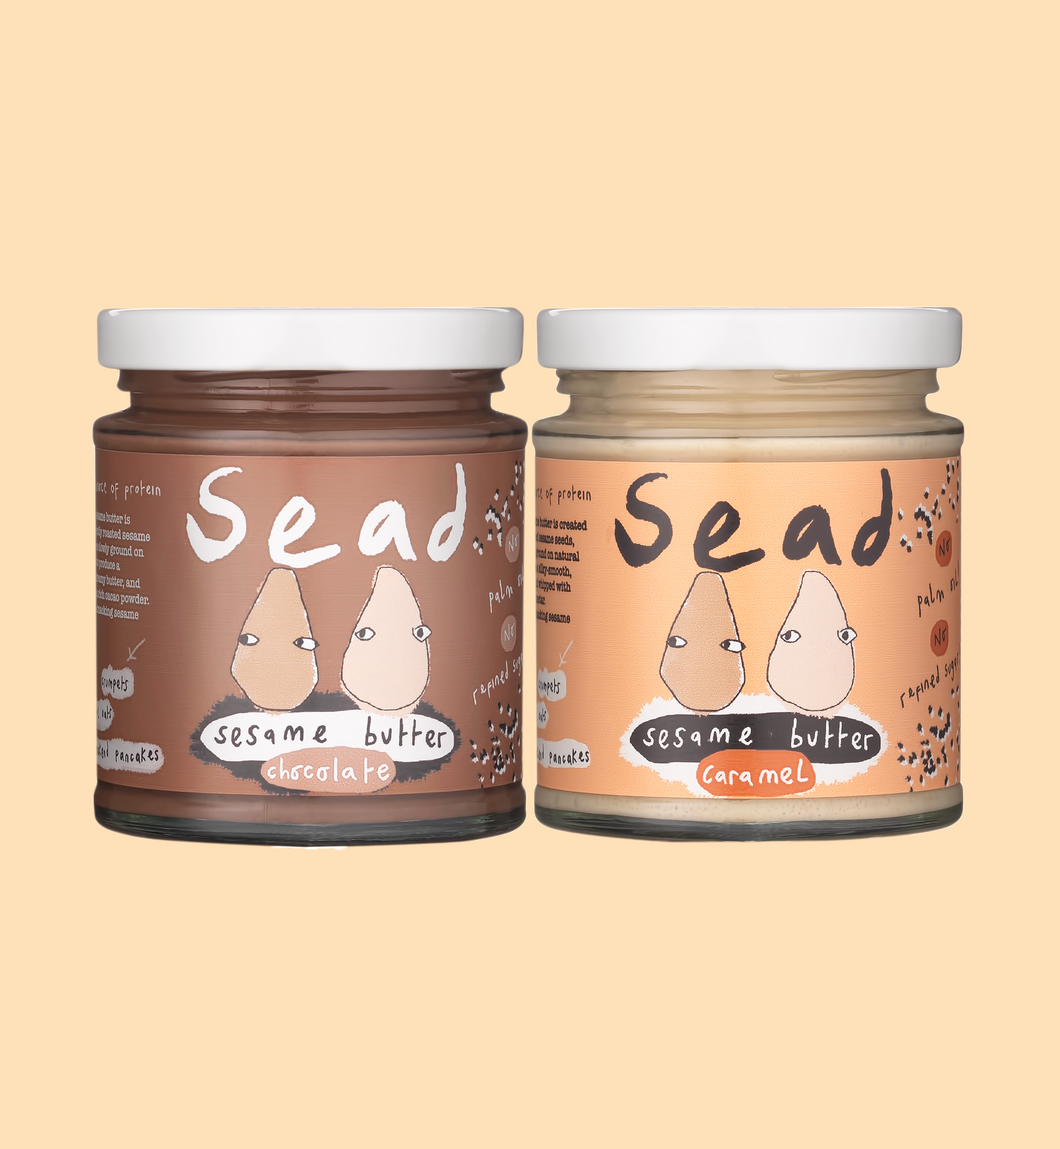 Chocolate & Caramel Sesame Butter Bundle (2 Pack)